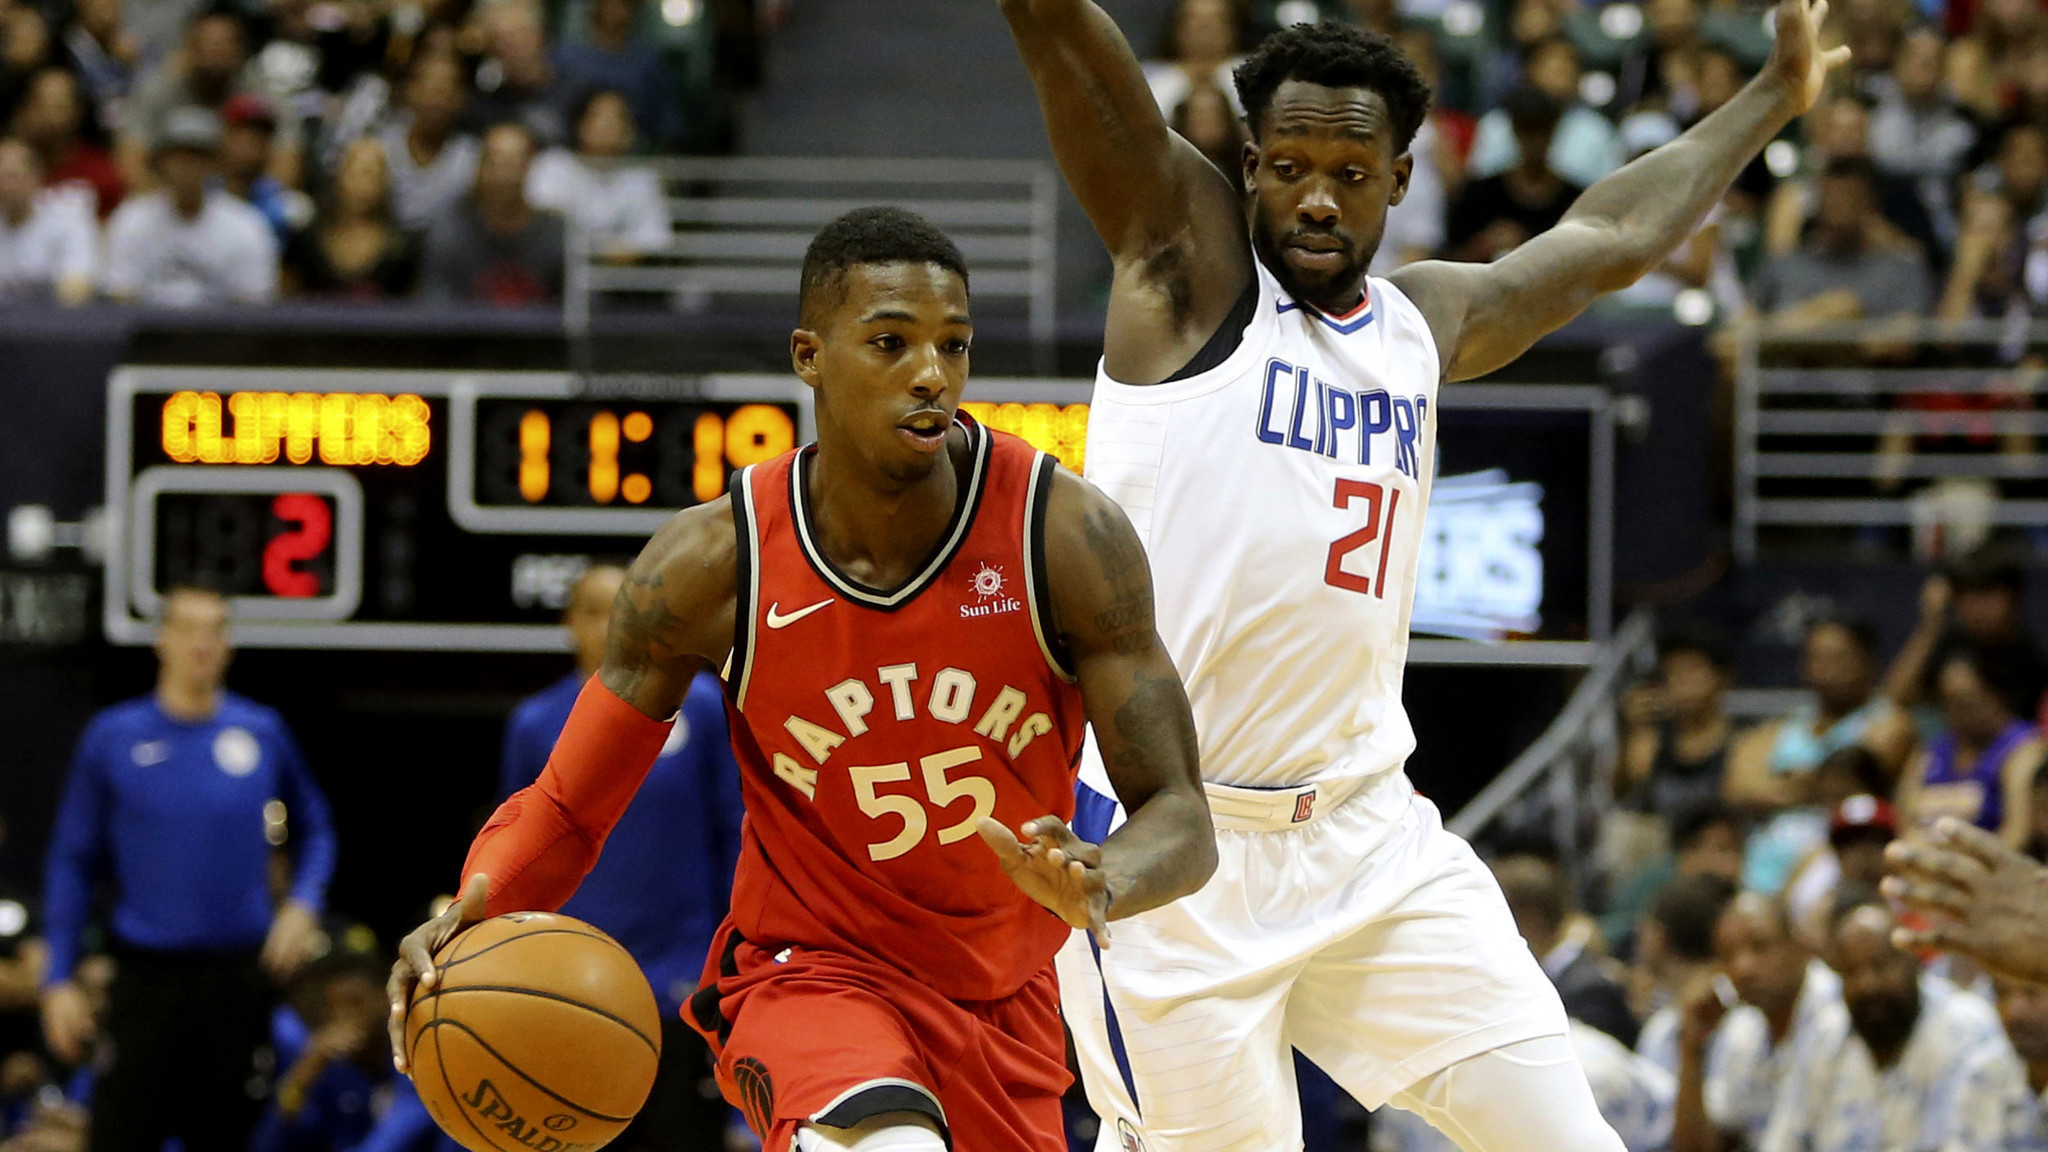 La-sp-clippers-beverley-20171005